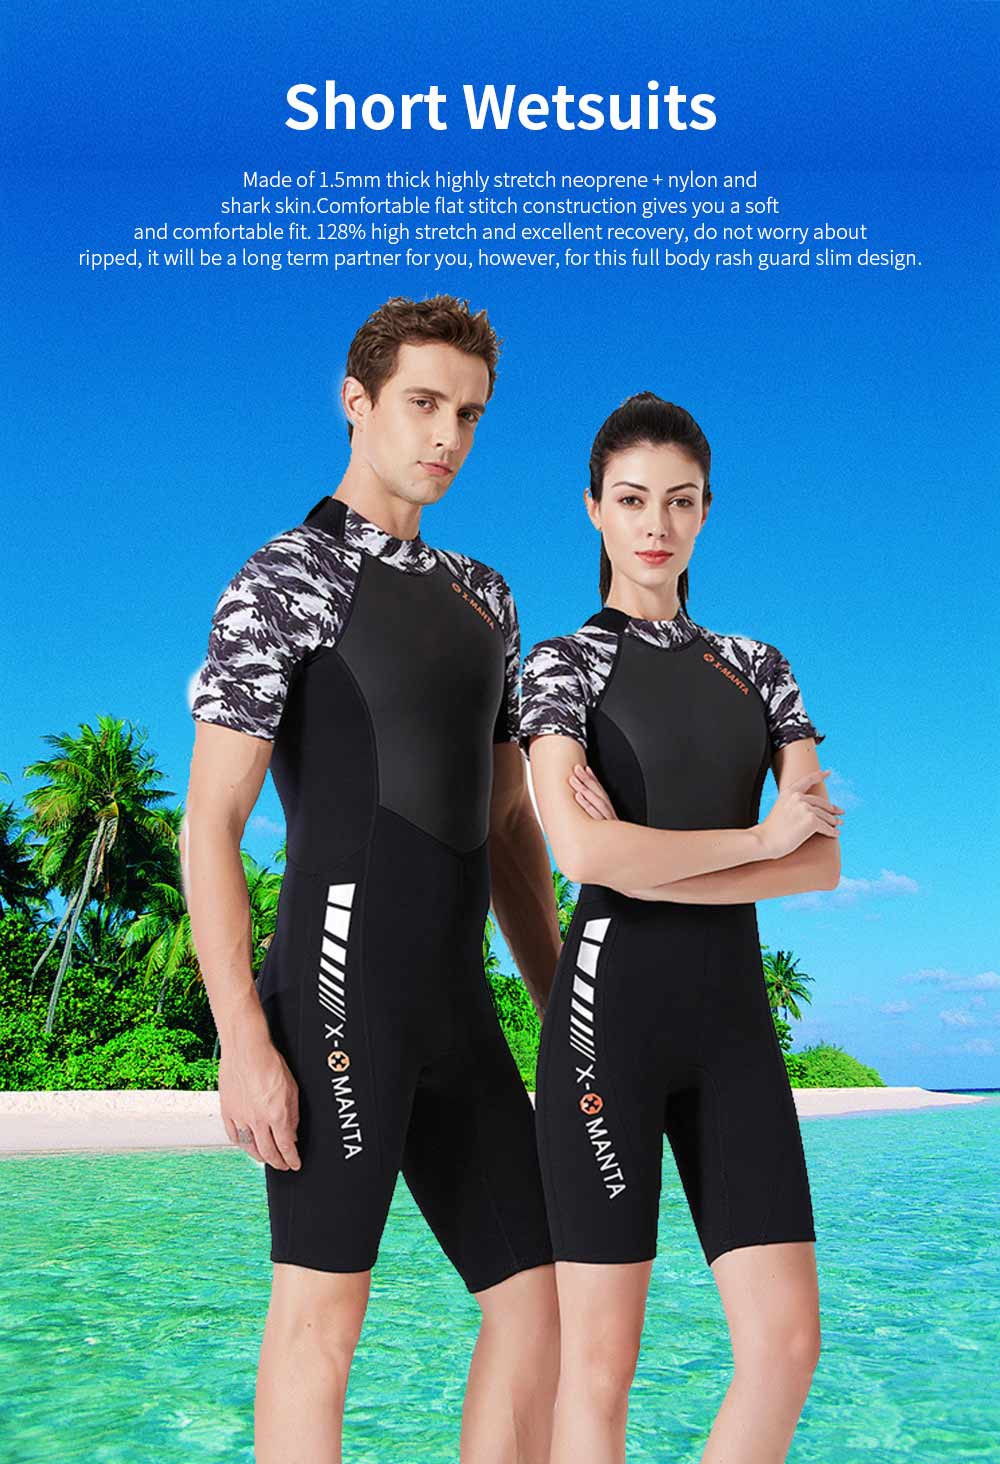 Women Short Wetsuits Premium 1.5mm Neoprene UV Protection Back Zip Diving Suits for Snorkeling Surfing Swimming 0